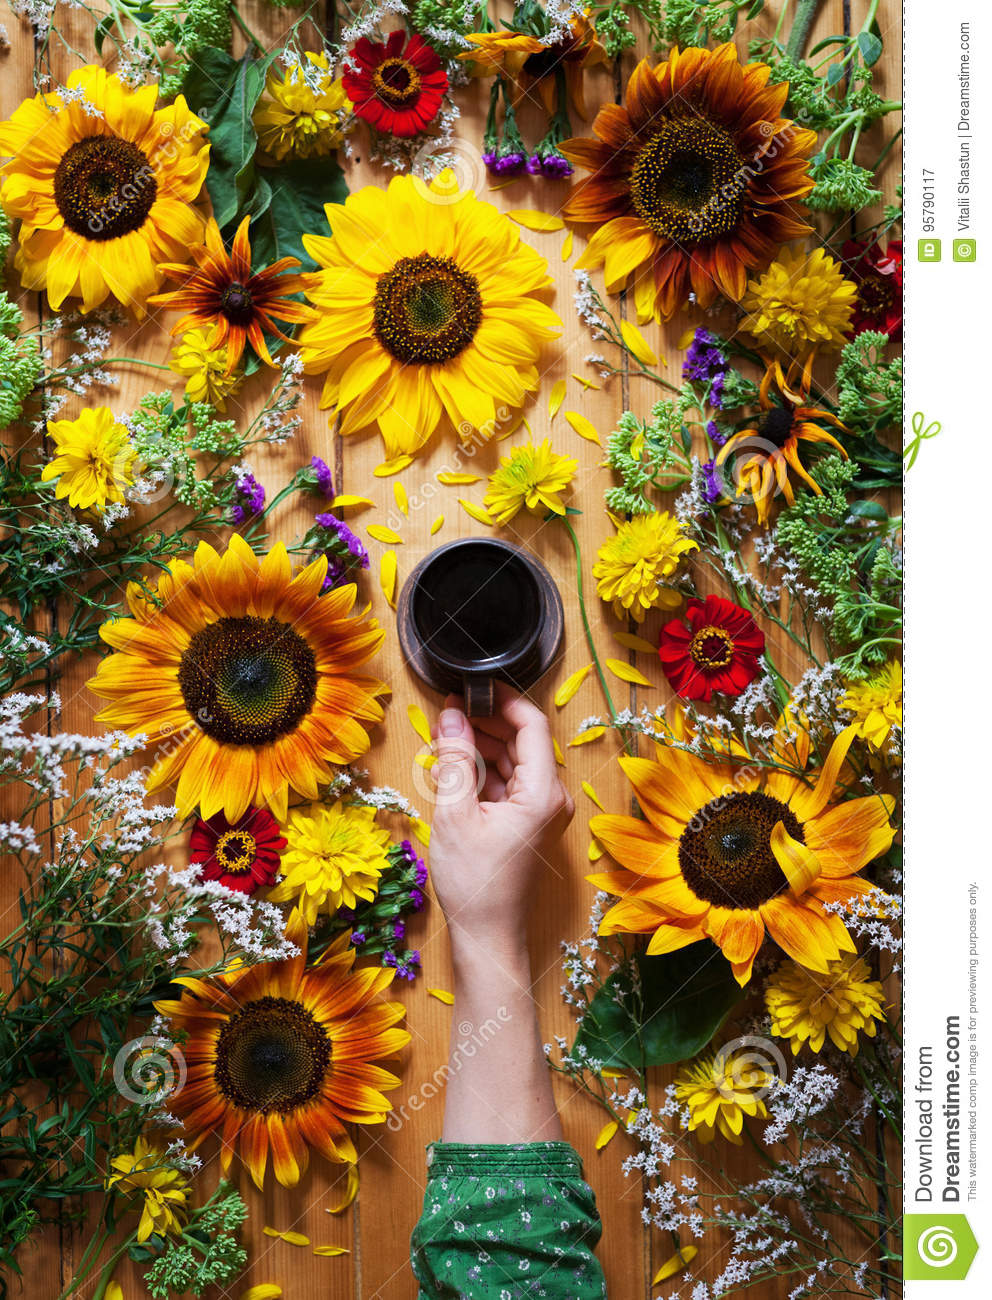 Floral summer background. A mug of coffee in a woman`s hand on a wooden background with sunflowers and wildflowers